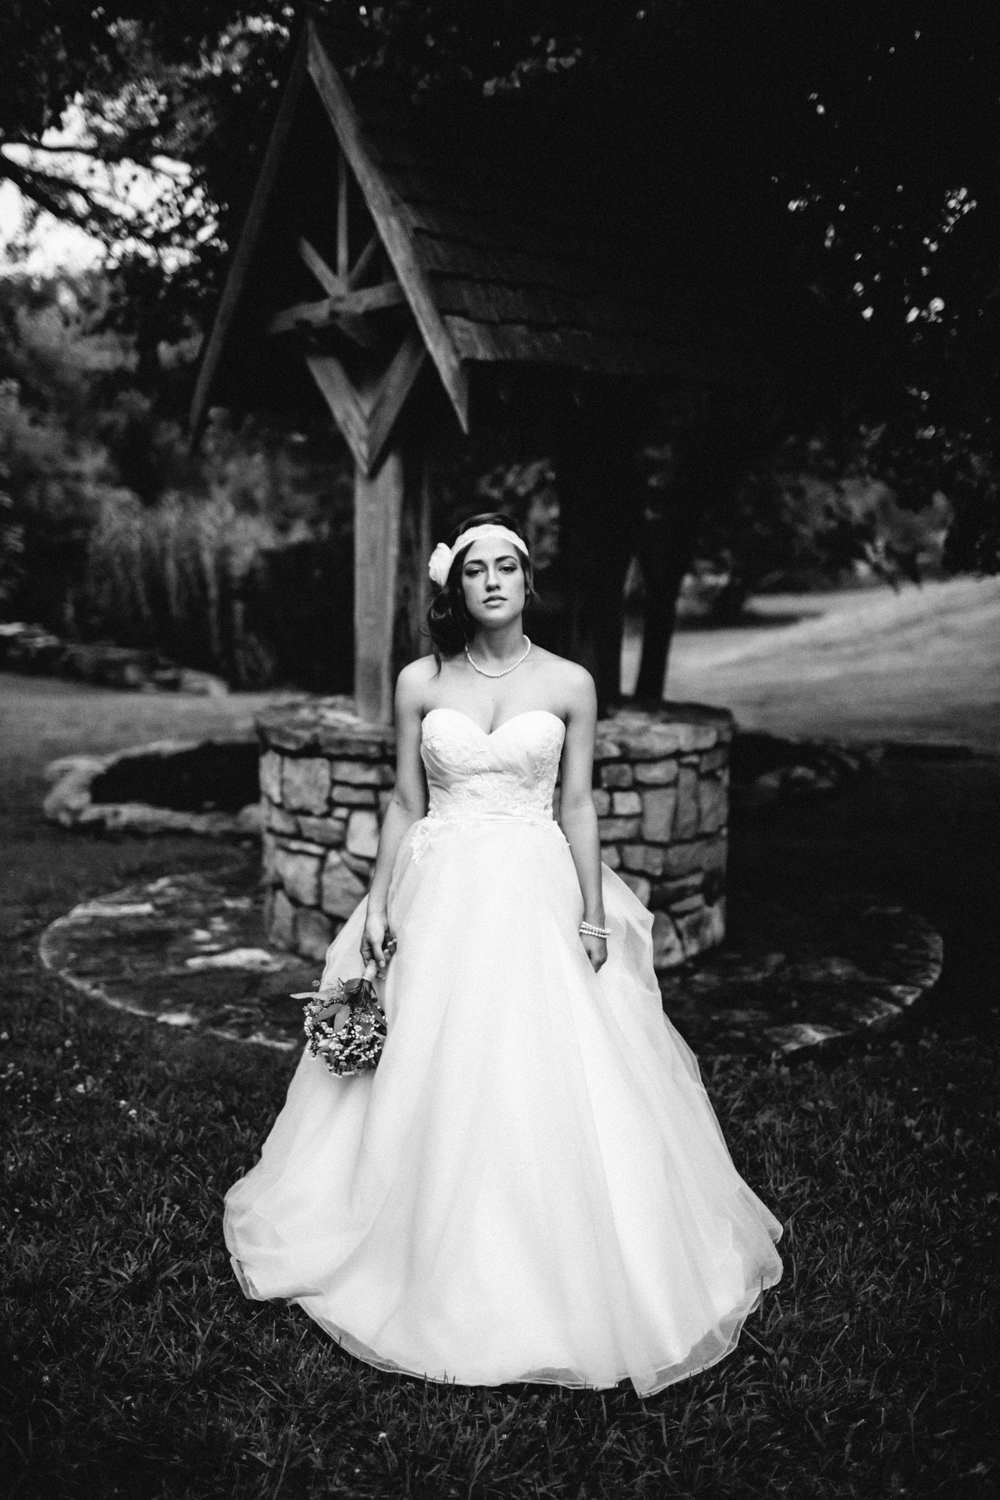 Wichita, Kansas Wedding Photographer - Wedding Photography - Neal Dieker-226.jpg